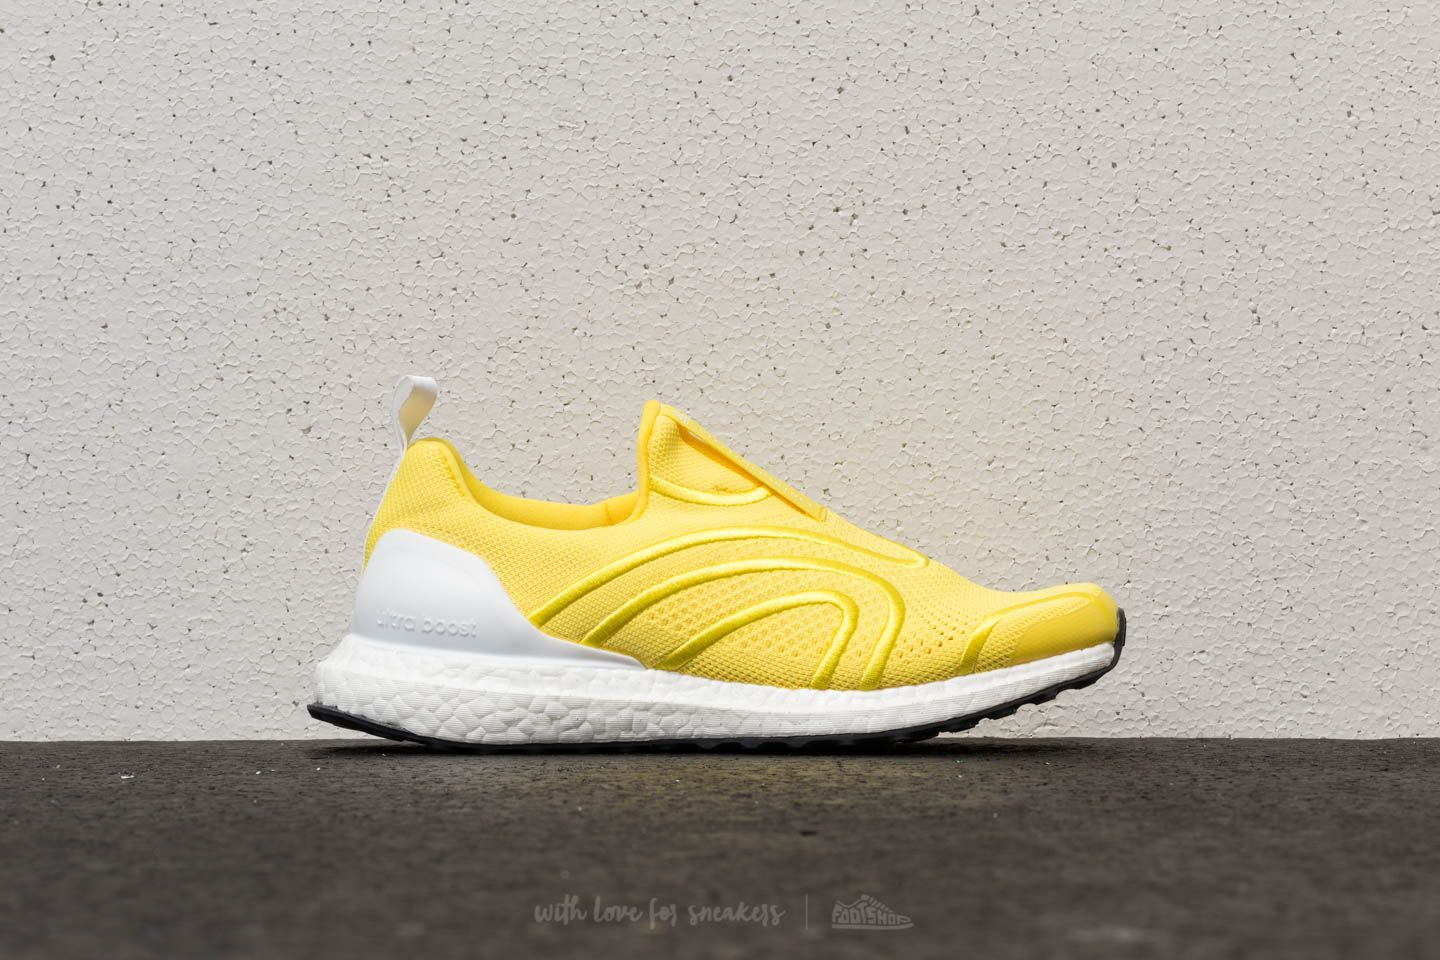 ef7a3a1bd adidas x Stella McCartney Ultraboost Uncaged Vivid Yellow  Ftw White  Night  Steel at a